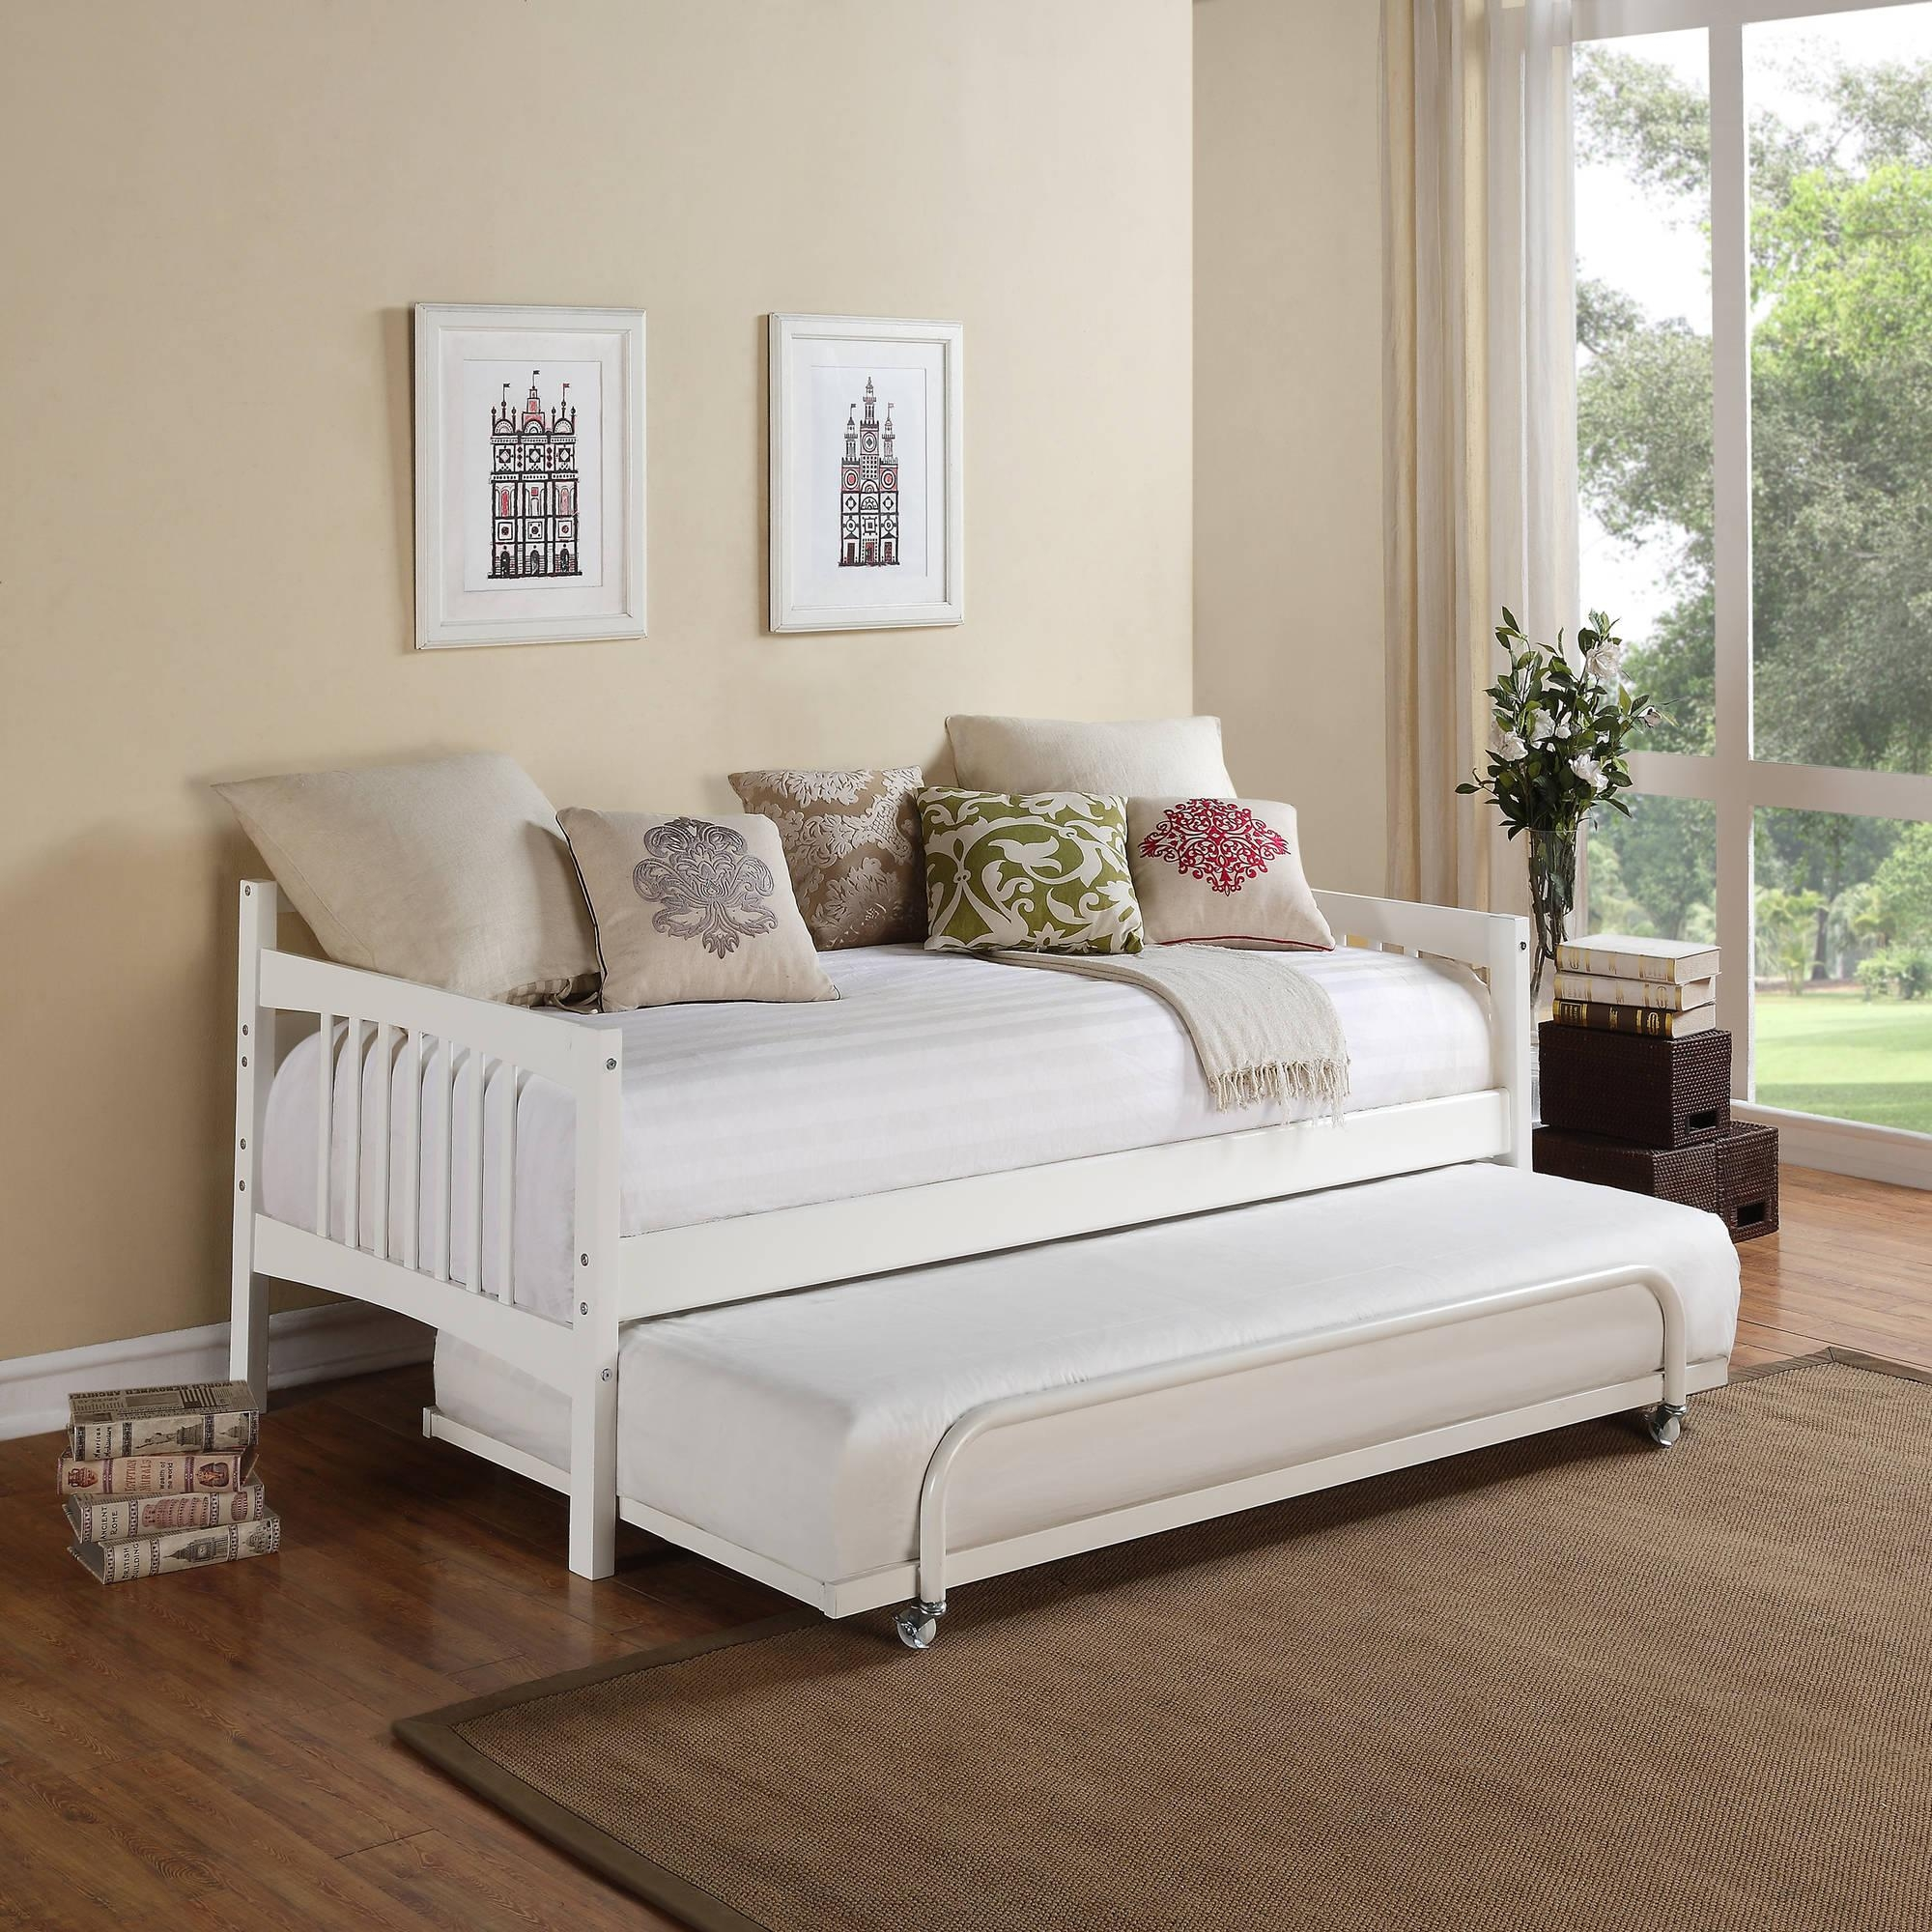 Cool Day Beds Cool Daybeds With Pop Up Trundle Sofa Bed At The Regarding Sofa Beds With Trundle (Image 7 of 20)